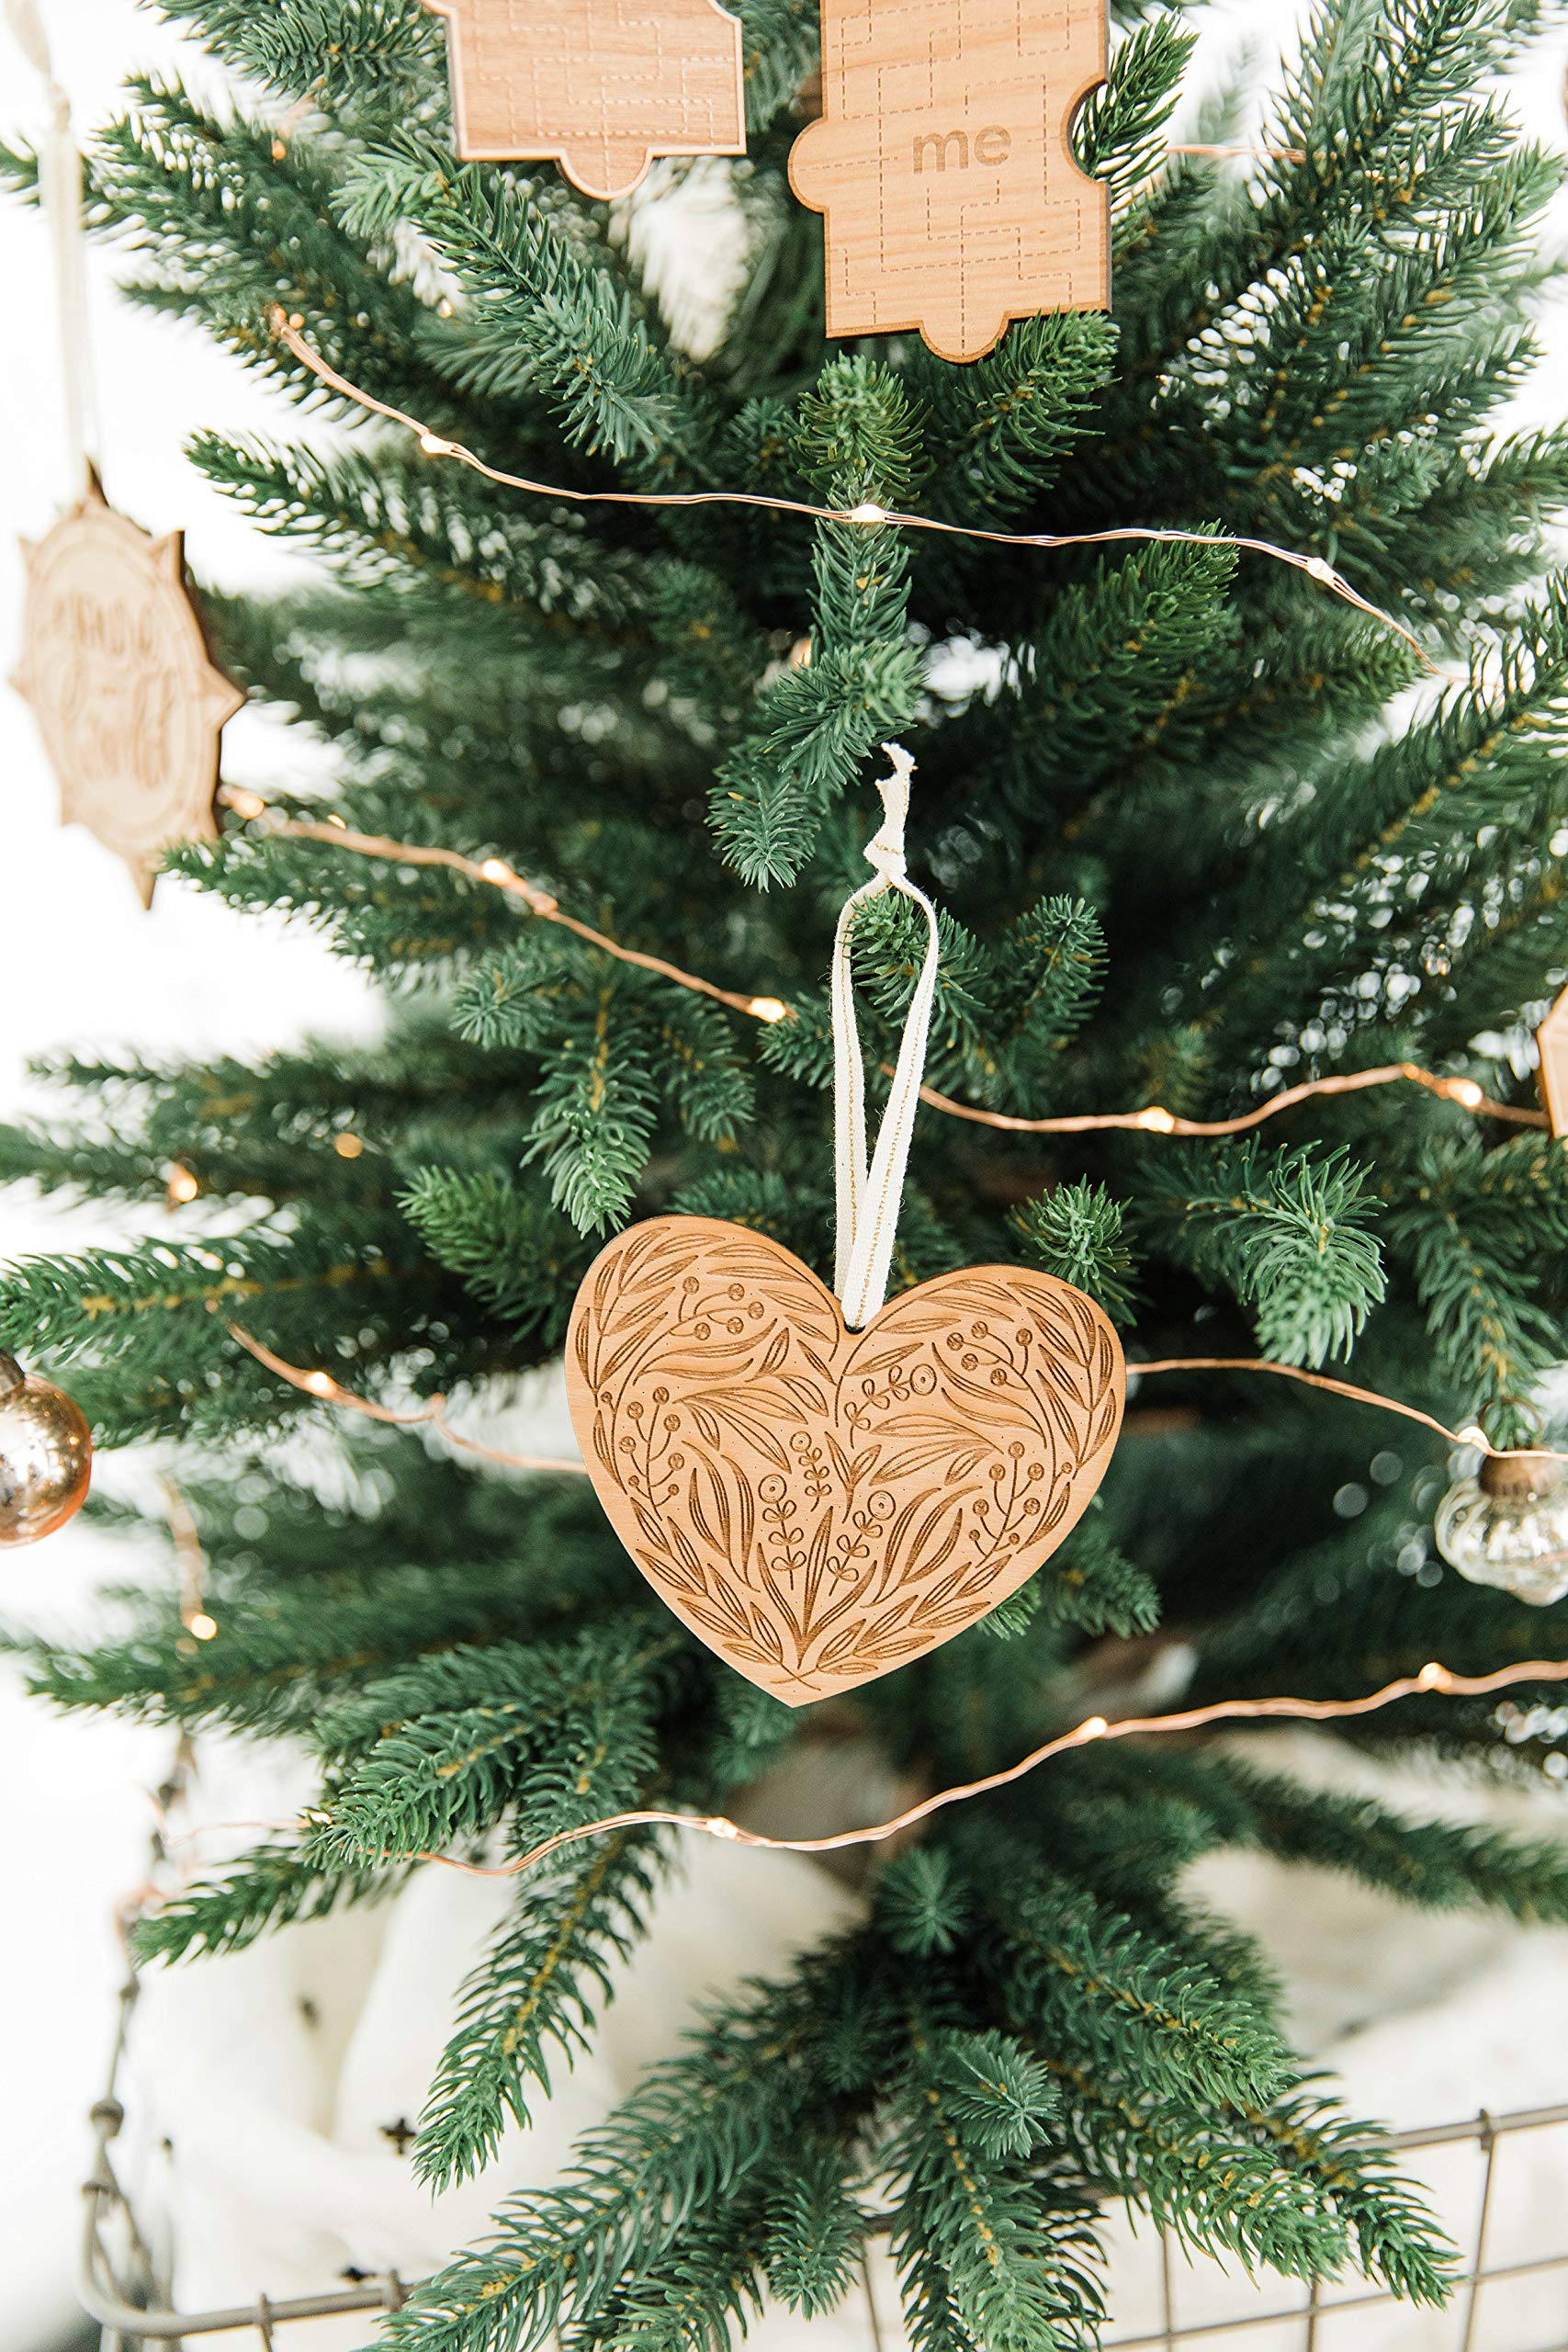 Floral Heart Laser Cut Wood Ornament (Christmas/Holiday / Anniversary/Newlyweds / Keepsake) by Cardtorial (Image #2)